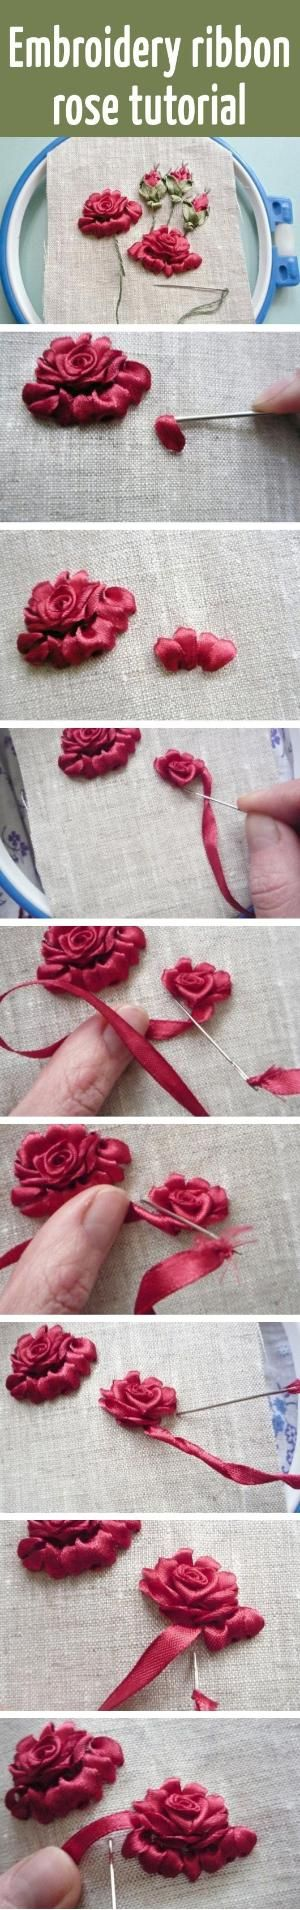 Best ideas about beginner embroidery on pinterest